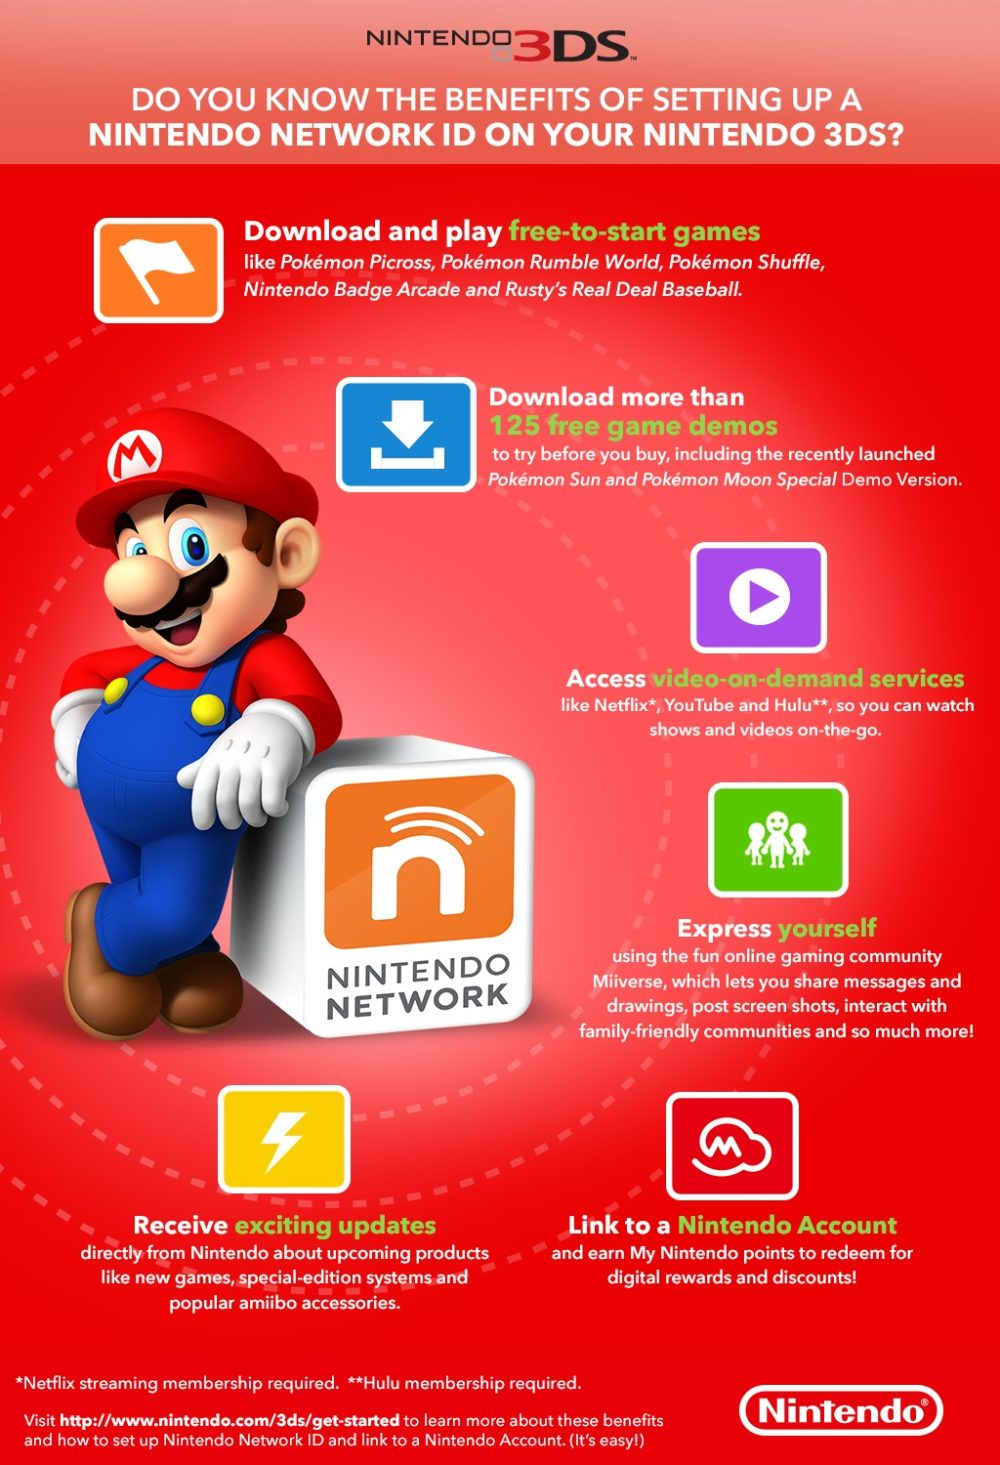 NNID_INFOGRAPHIC